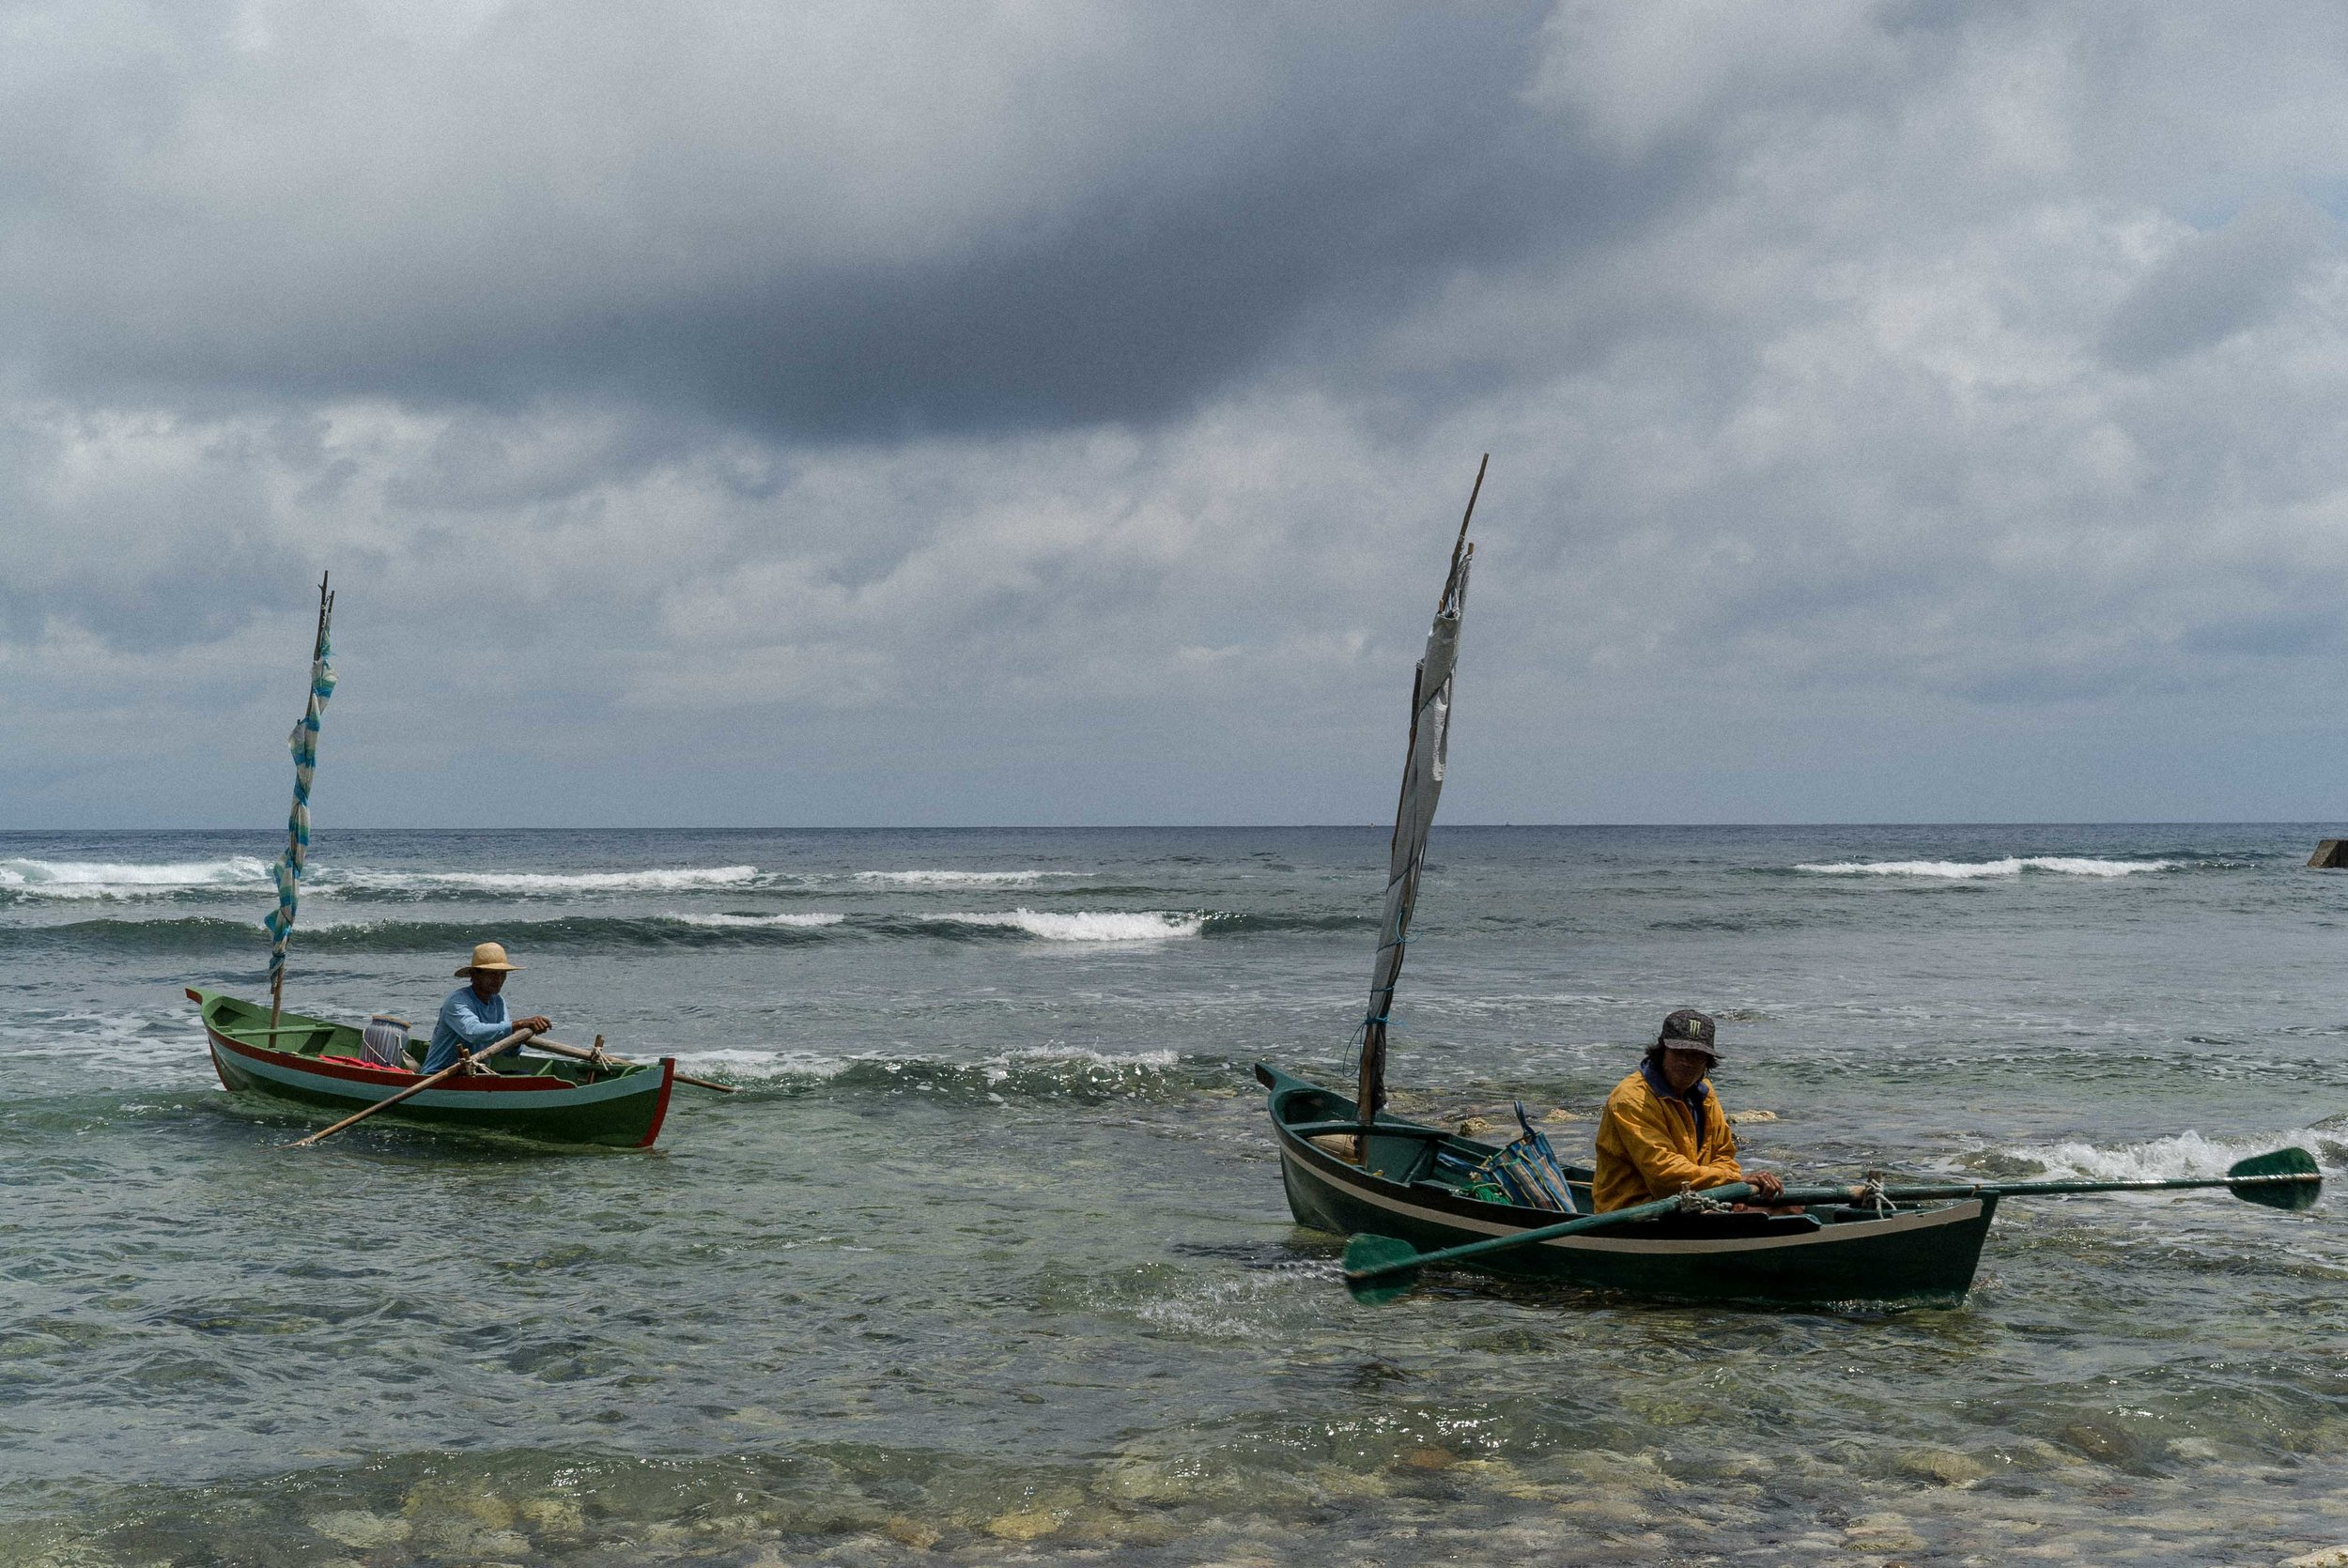 By 11AM Mahatao fishermen paddle back to the shore.